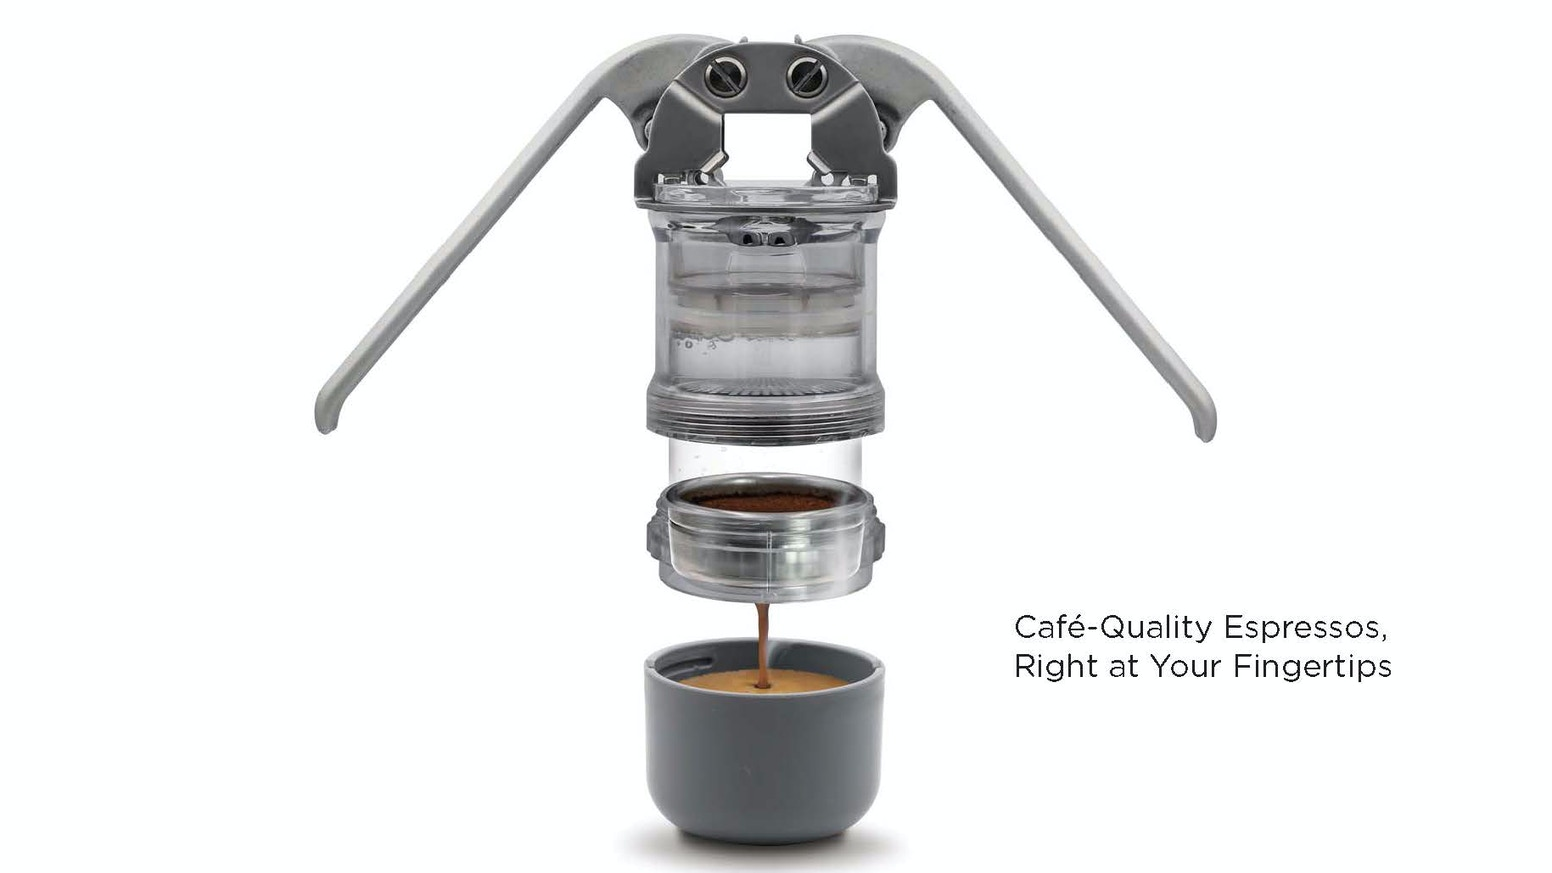 Leverpresso is the first portable lever espresso maker that allows you to make your personal café-quality coffee anywhere.